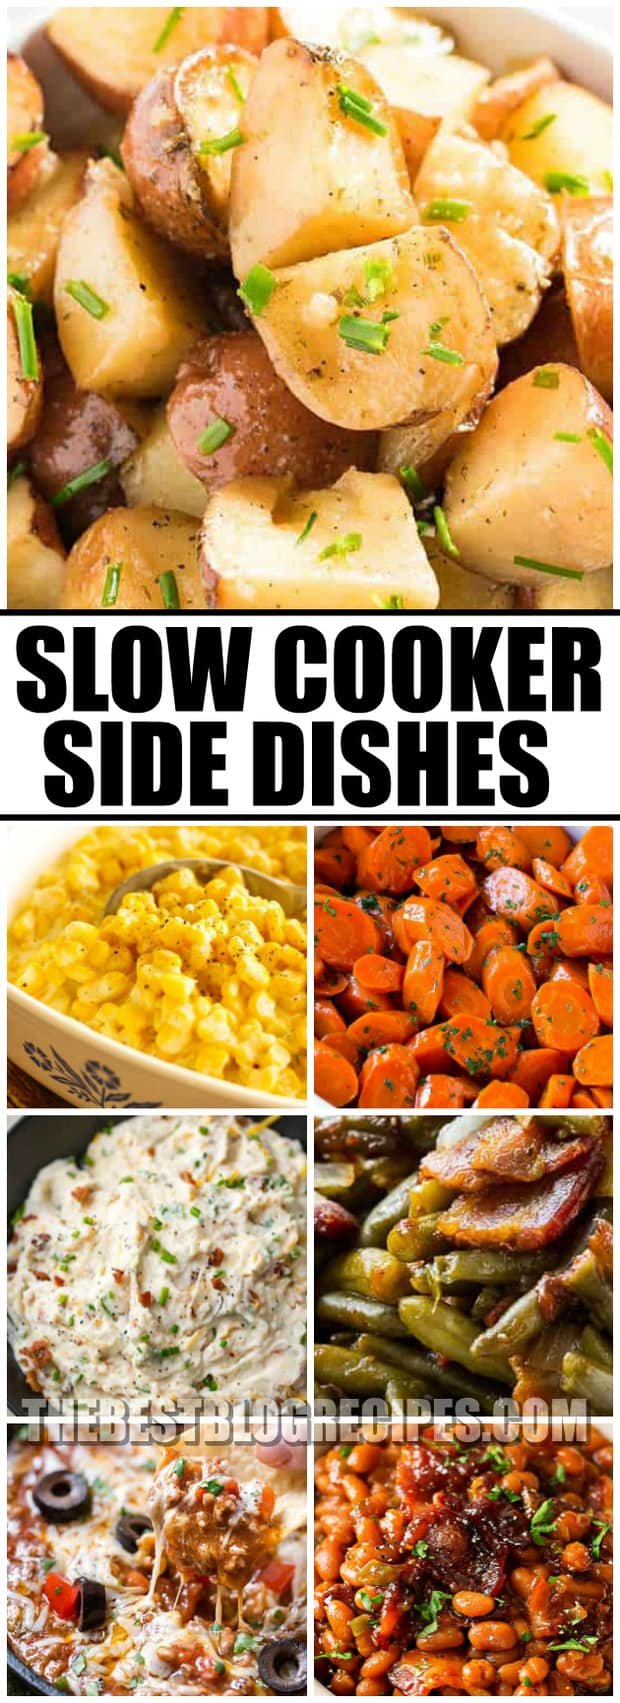 Slow Cooker Side Dishes for Delicious Dinners